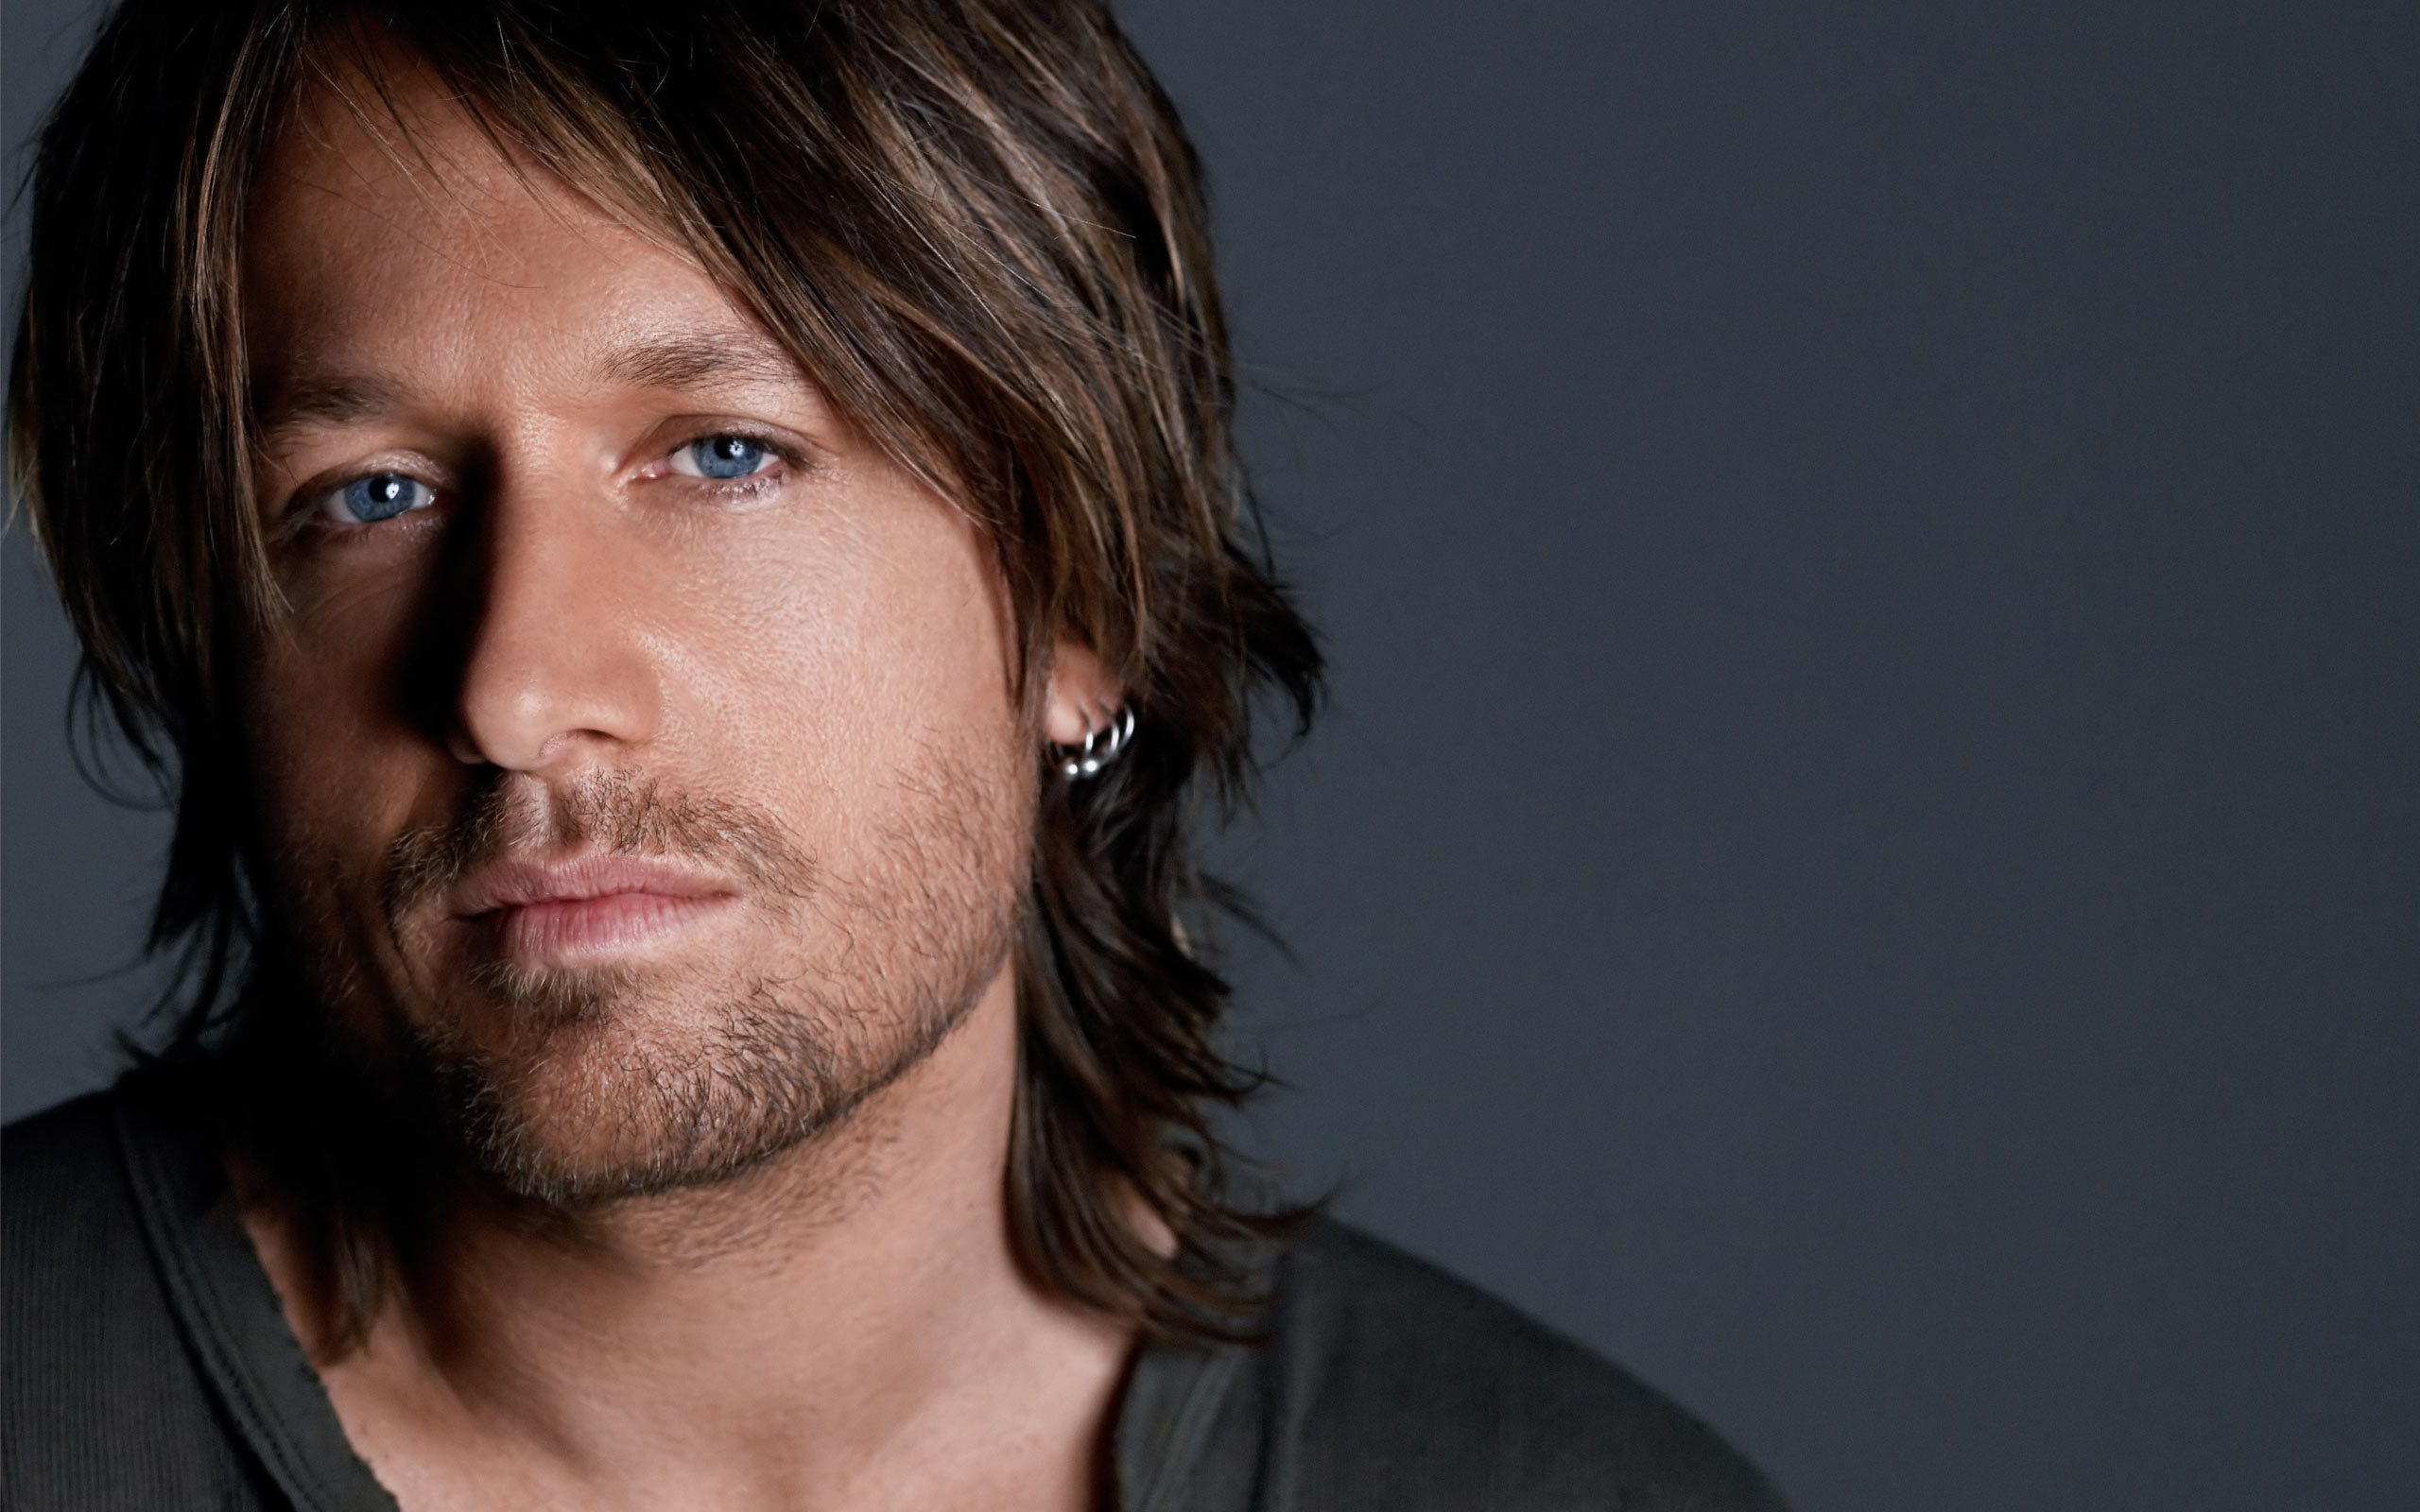 original wallpaper download Mustache Guy singer Keith urban new 2560x1600